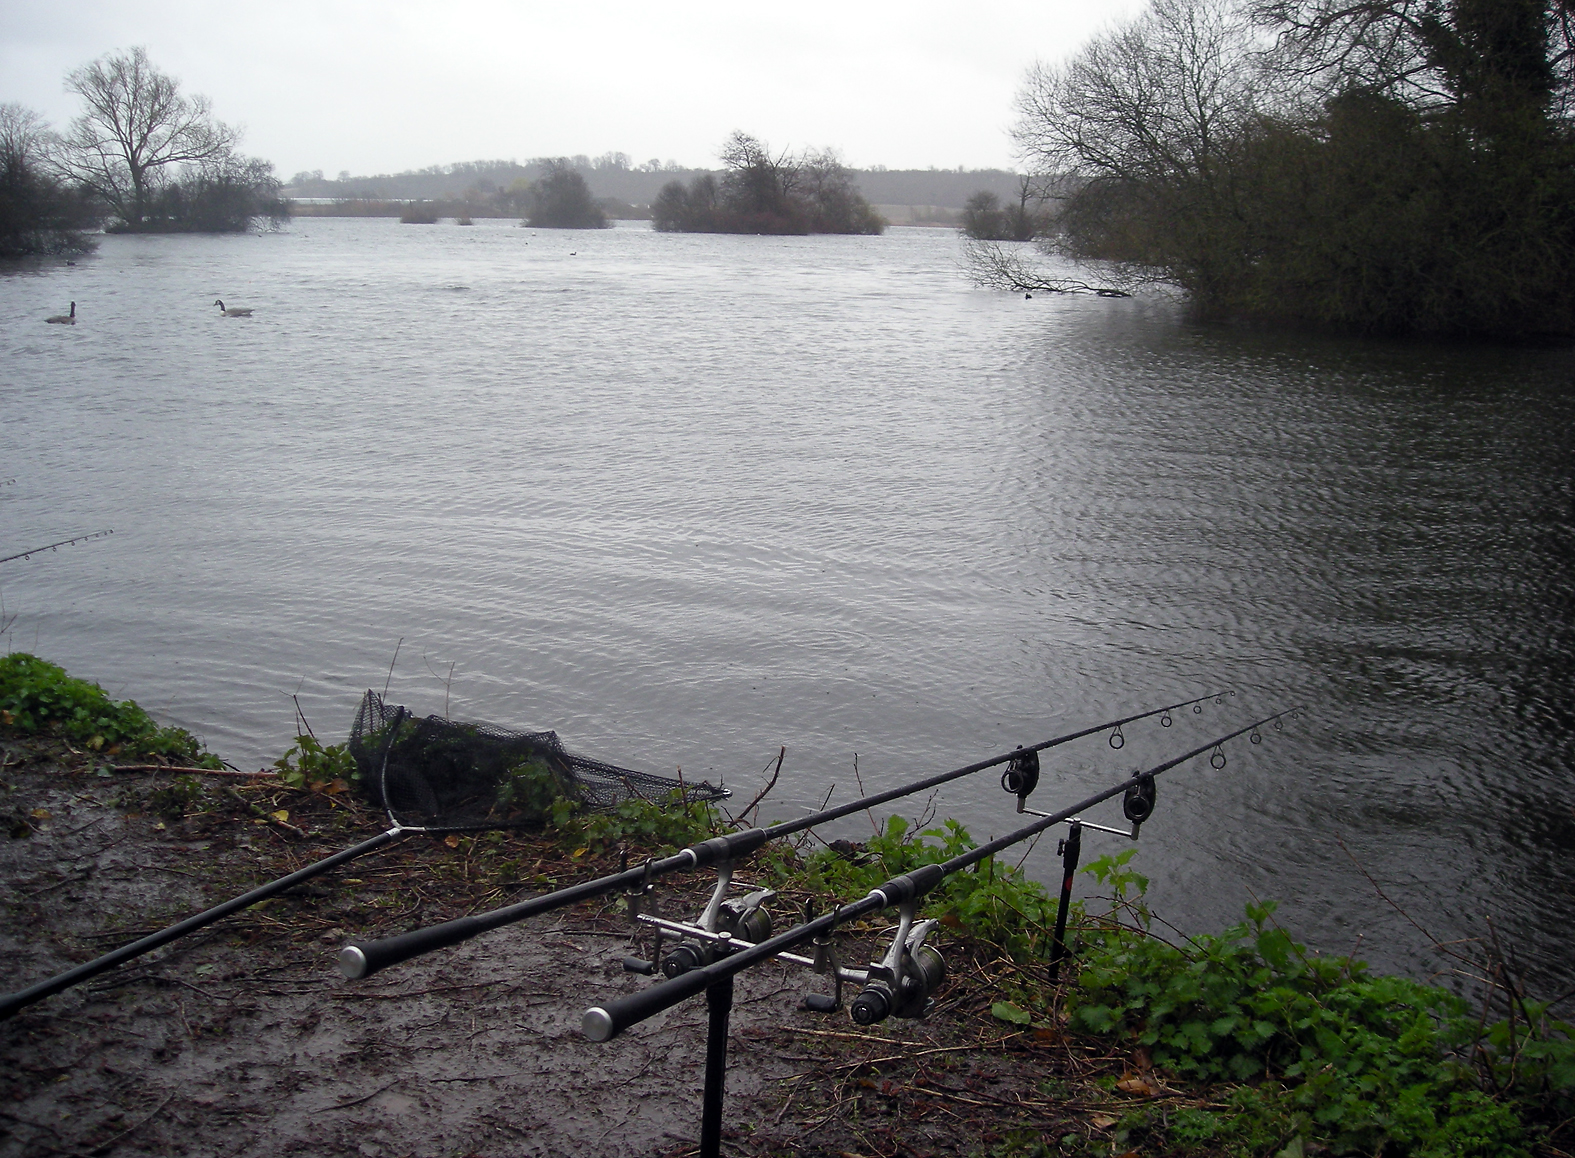 There was a big storm blowing... was watching for falling trees, not my rods!